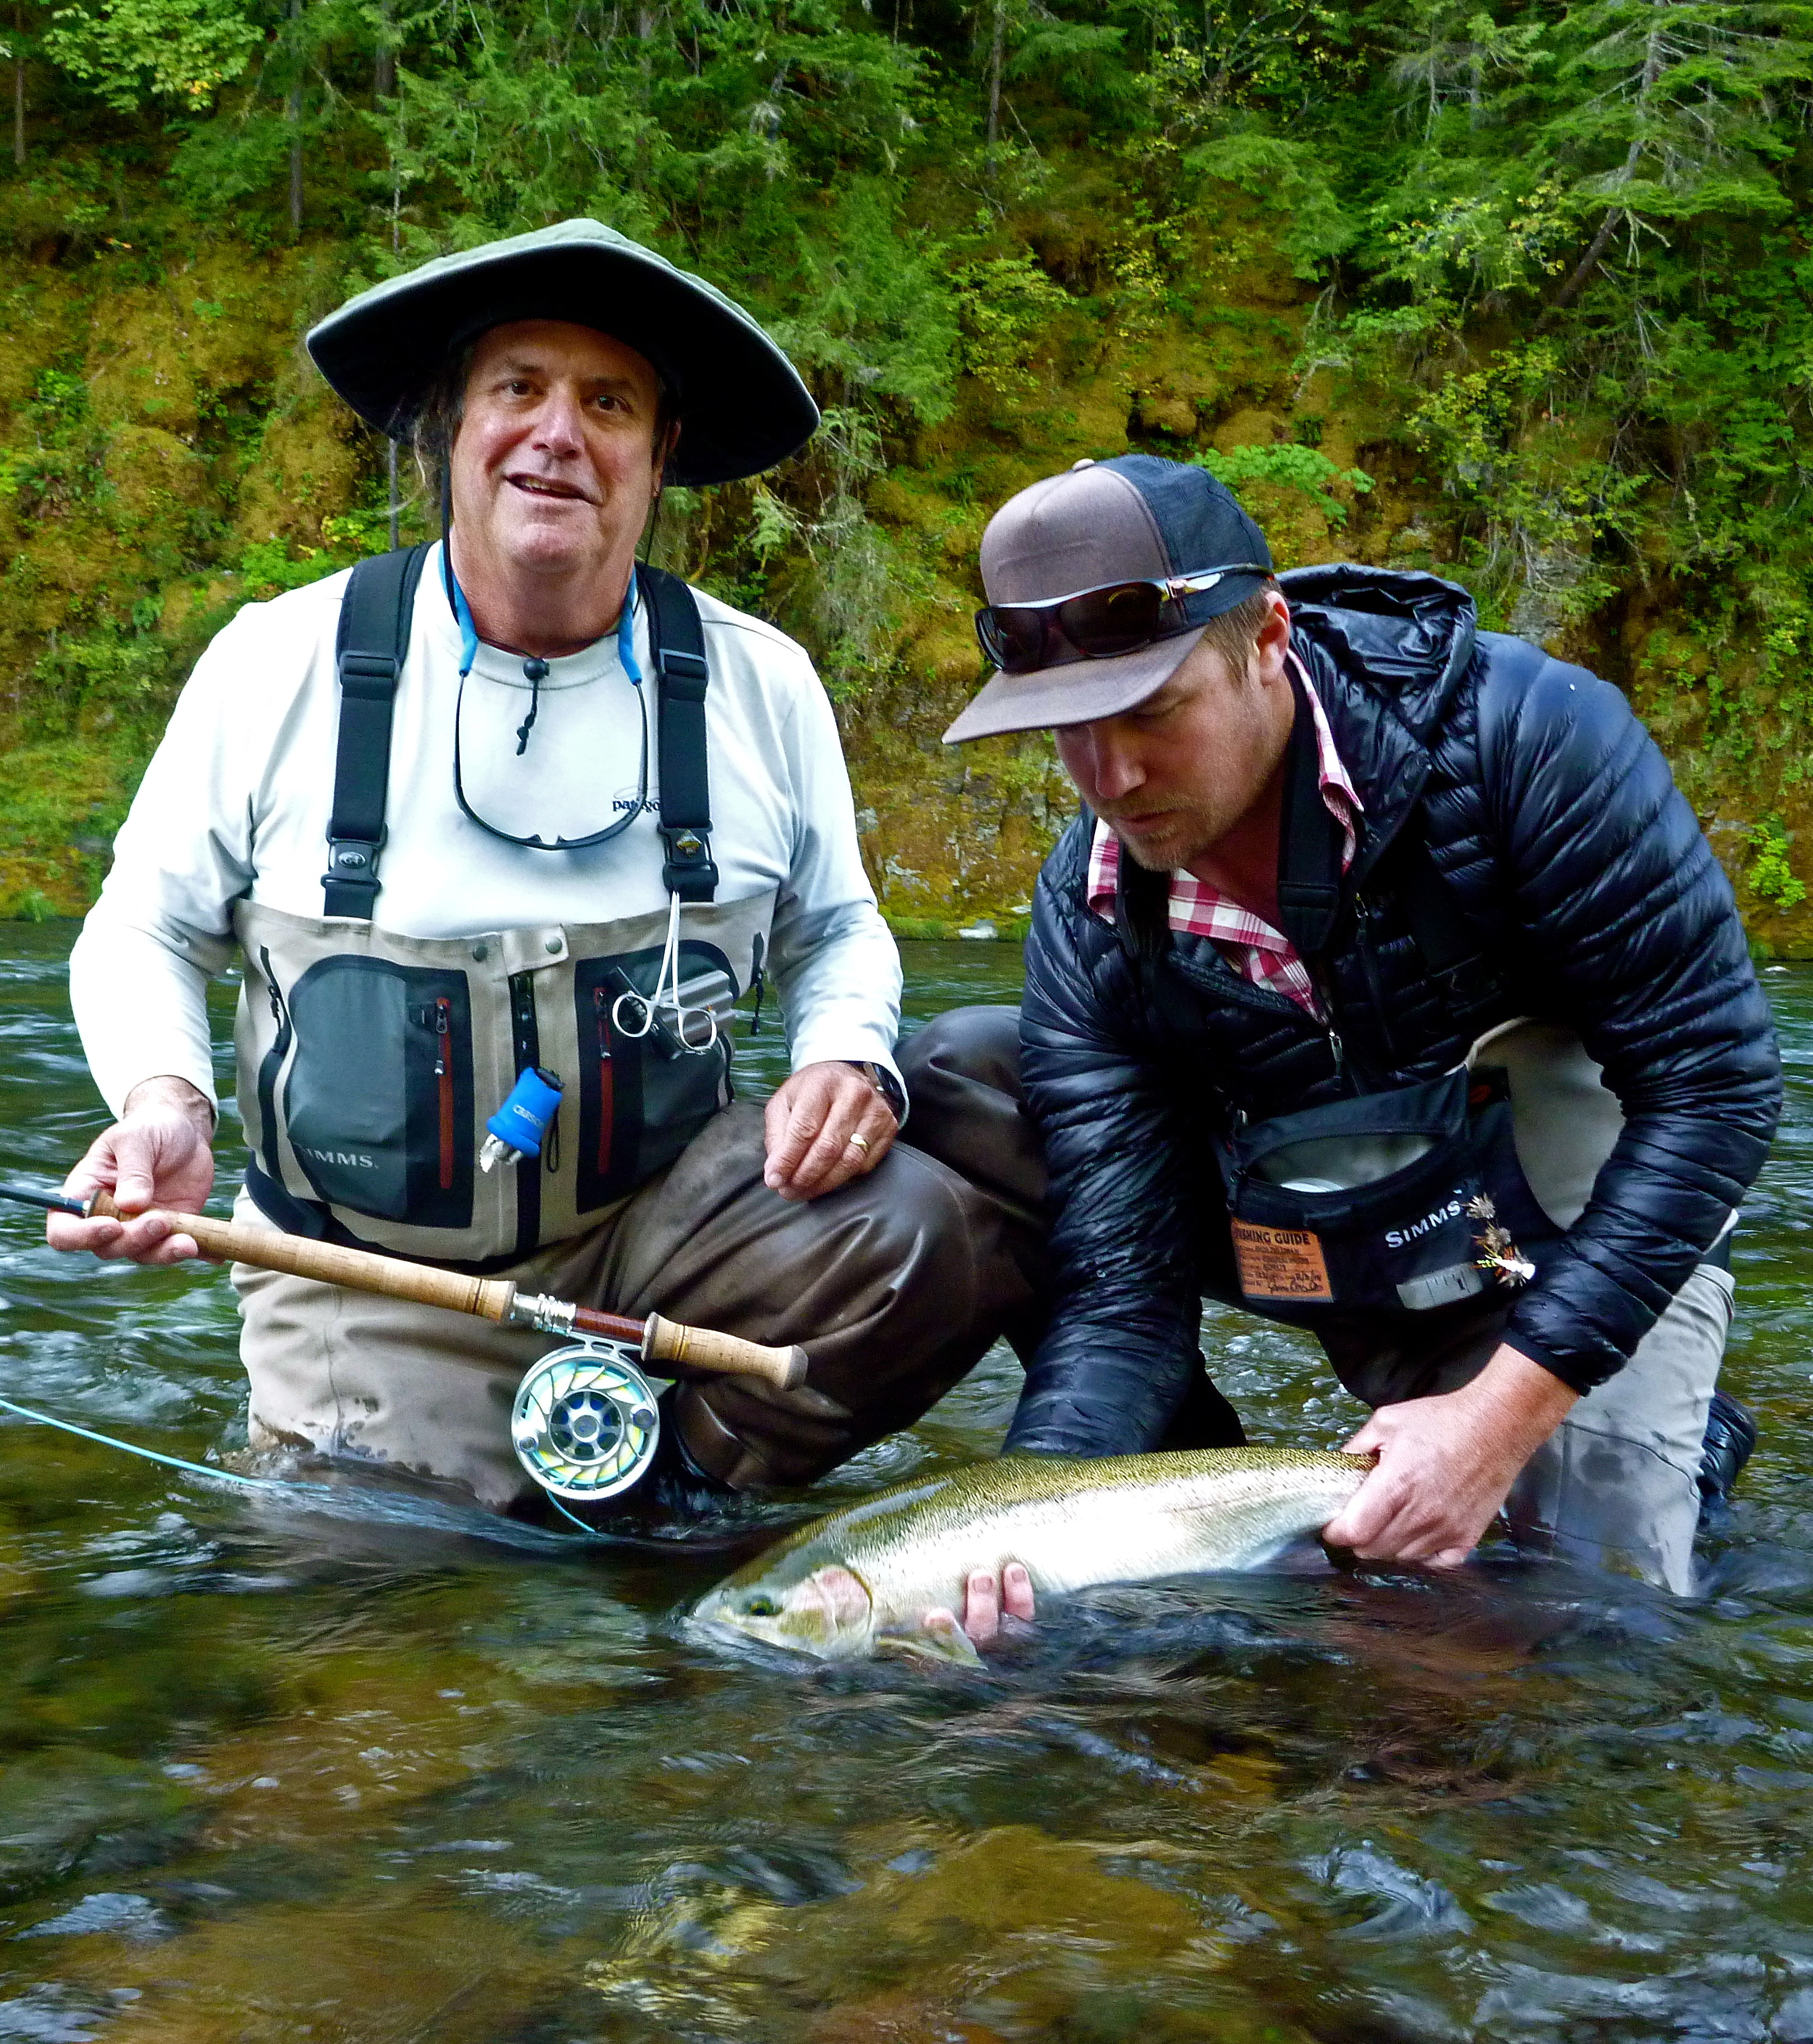 Big Dave with his first steelhead on the dry. There may have been a little flatfooting on the bank afterwards or maybe not.